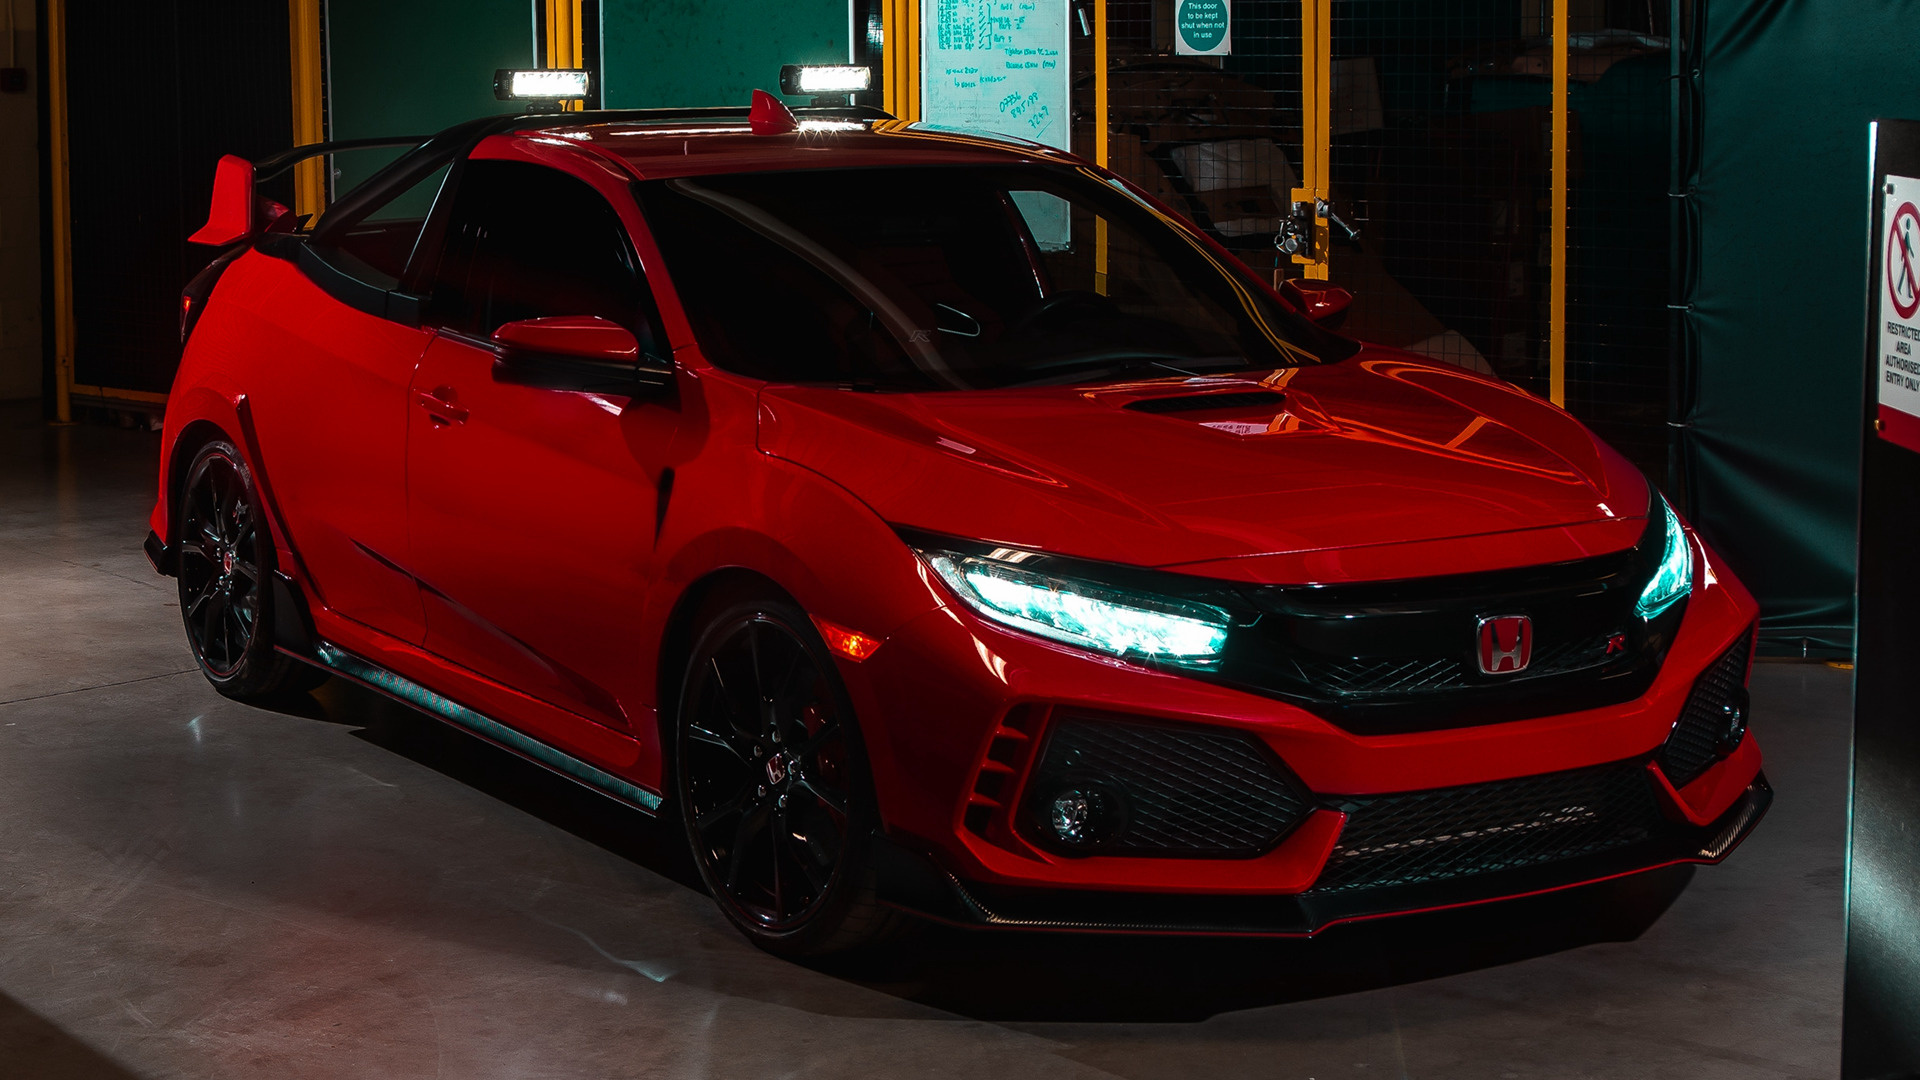 2018 Honda Civic Type R Pickup Truck Concept - Wallpapers ...